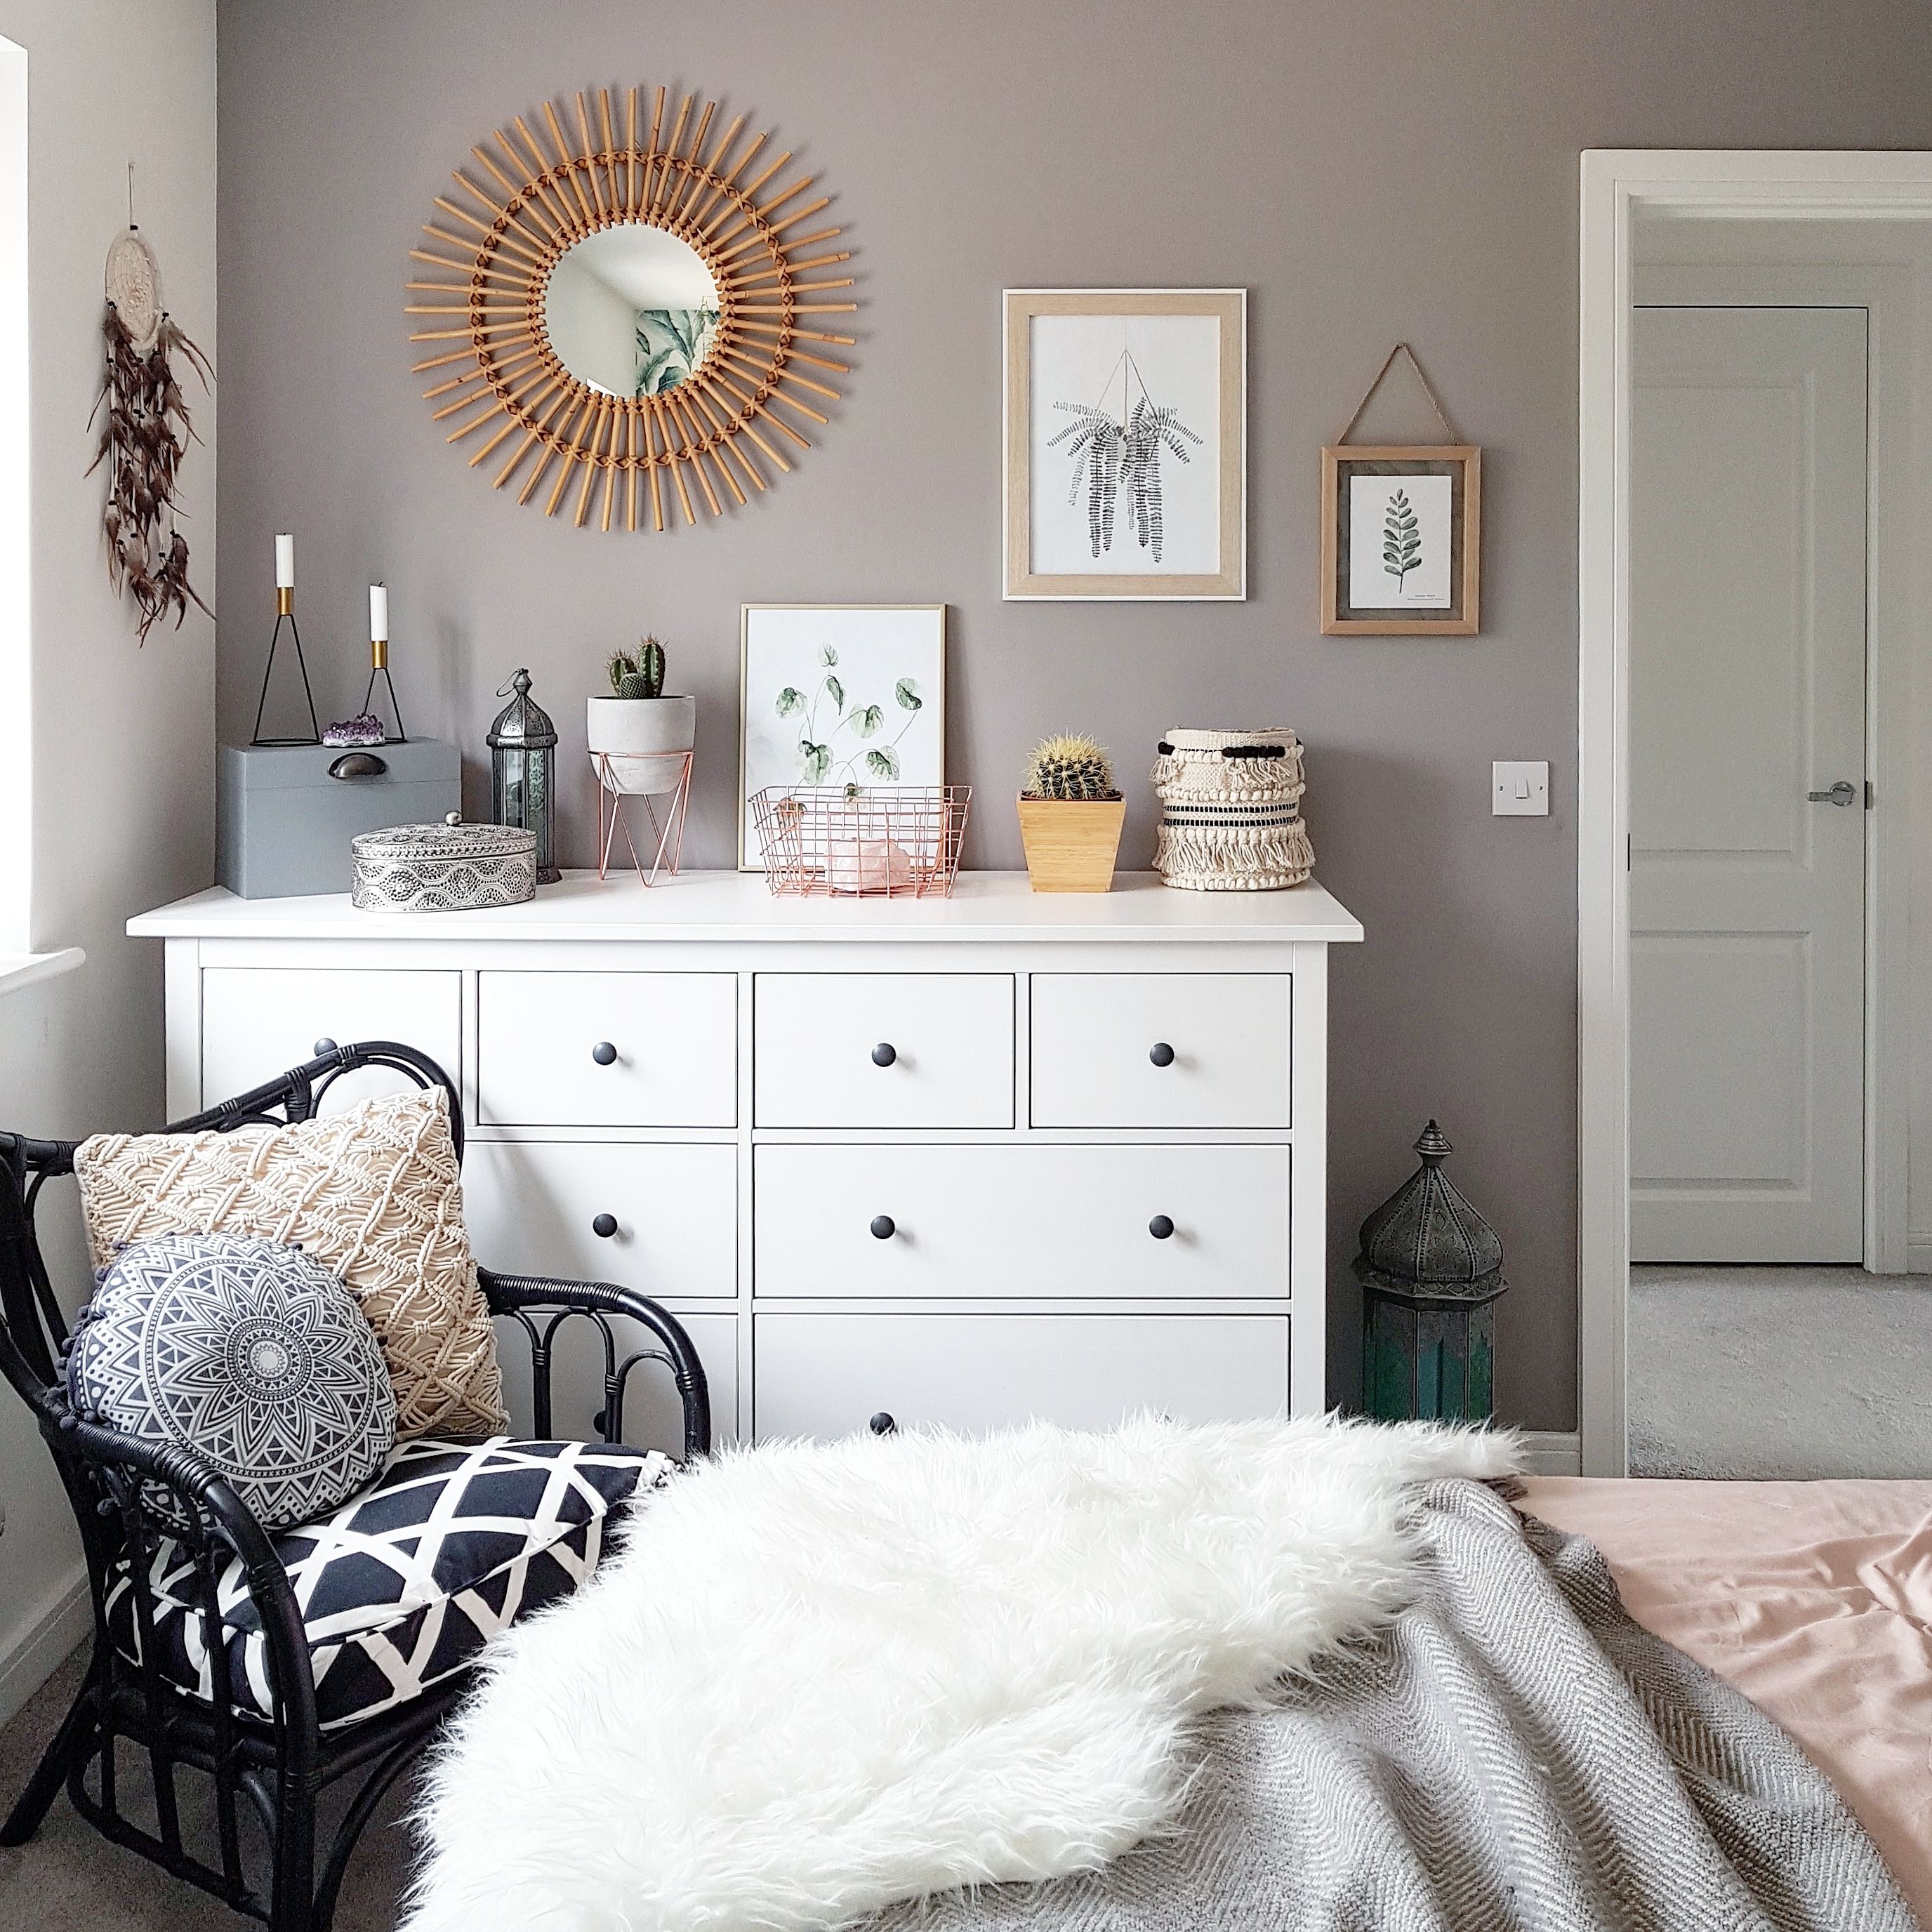 taupe painted walls